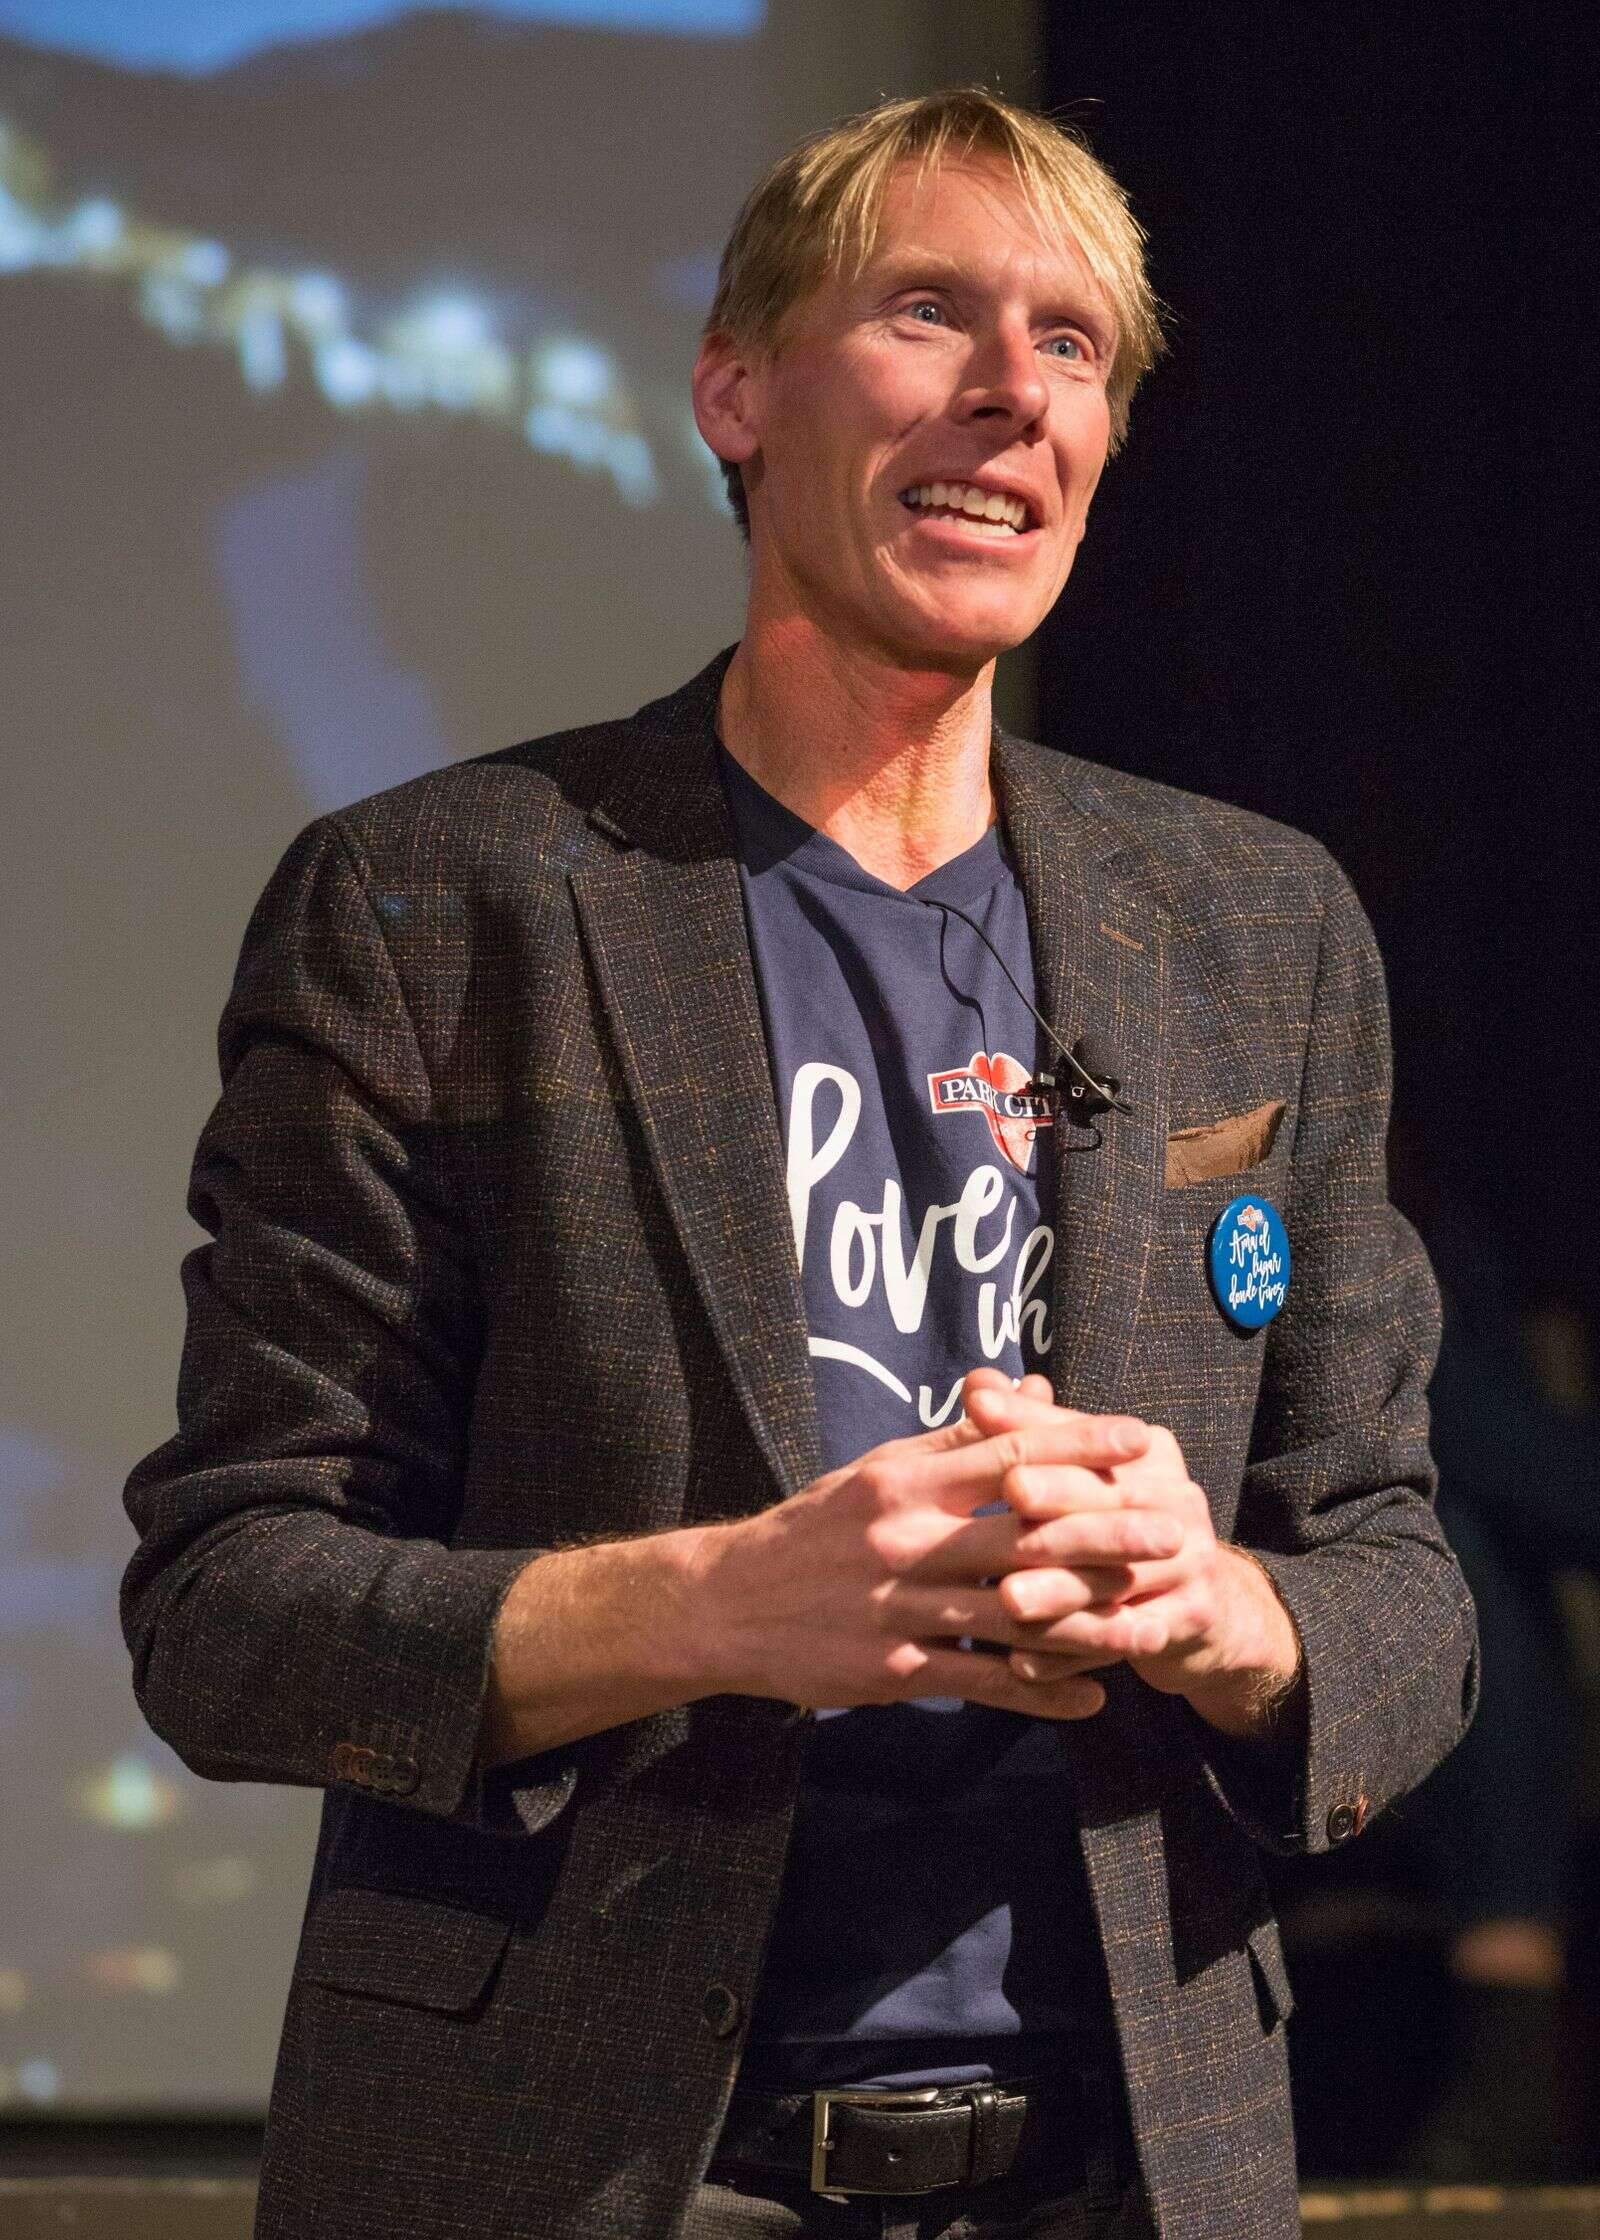 Park City mayor readies a State of the City address heavy on recovery, rebuilding and reimagining after difficult year